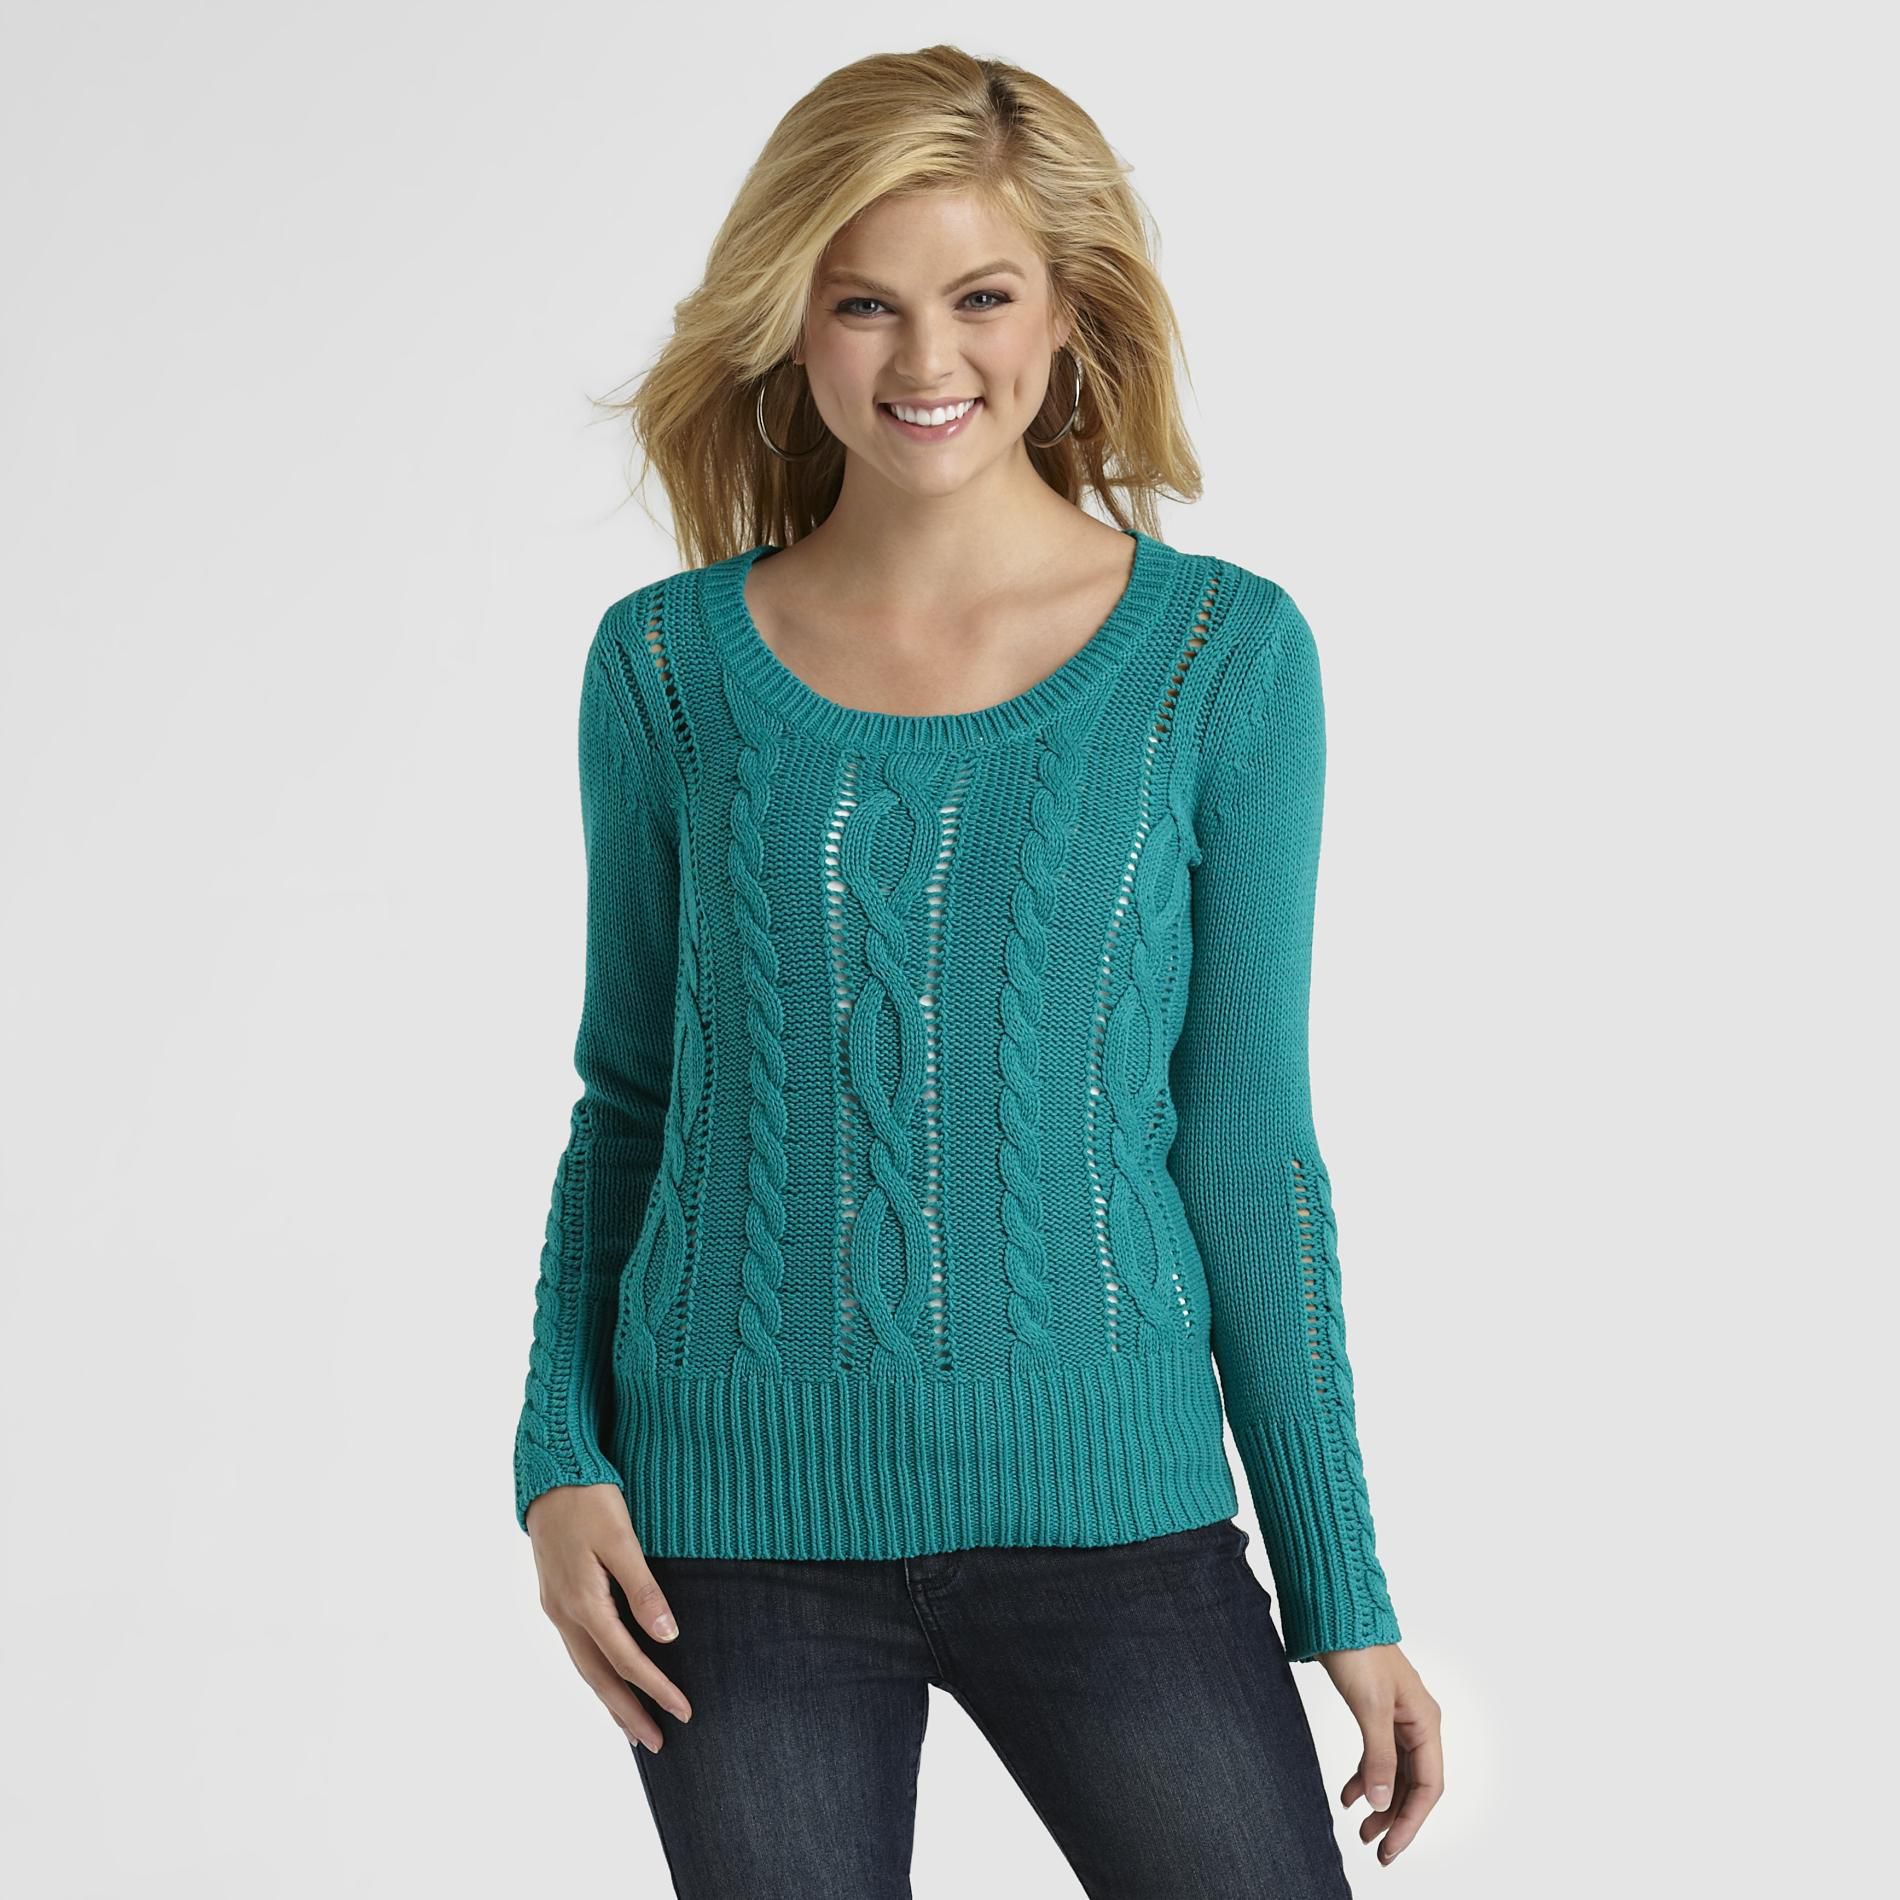 Women's Open Cable Knit Sweater